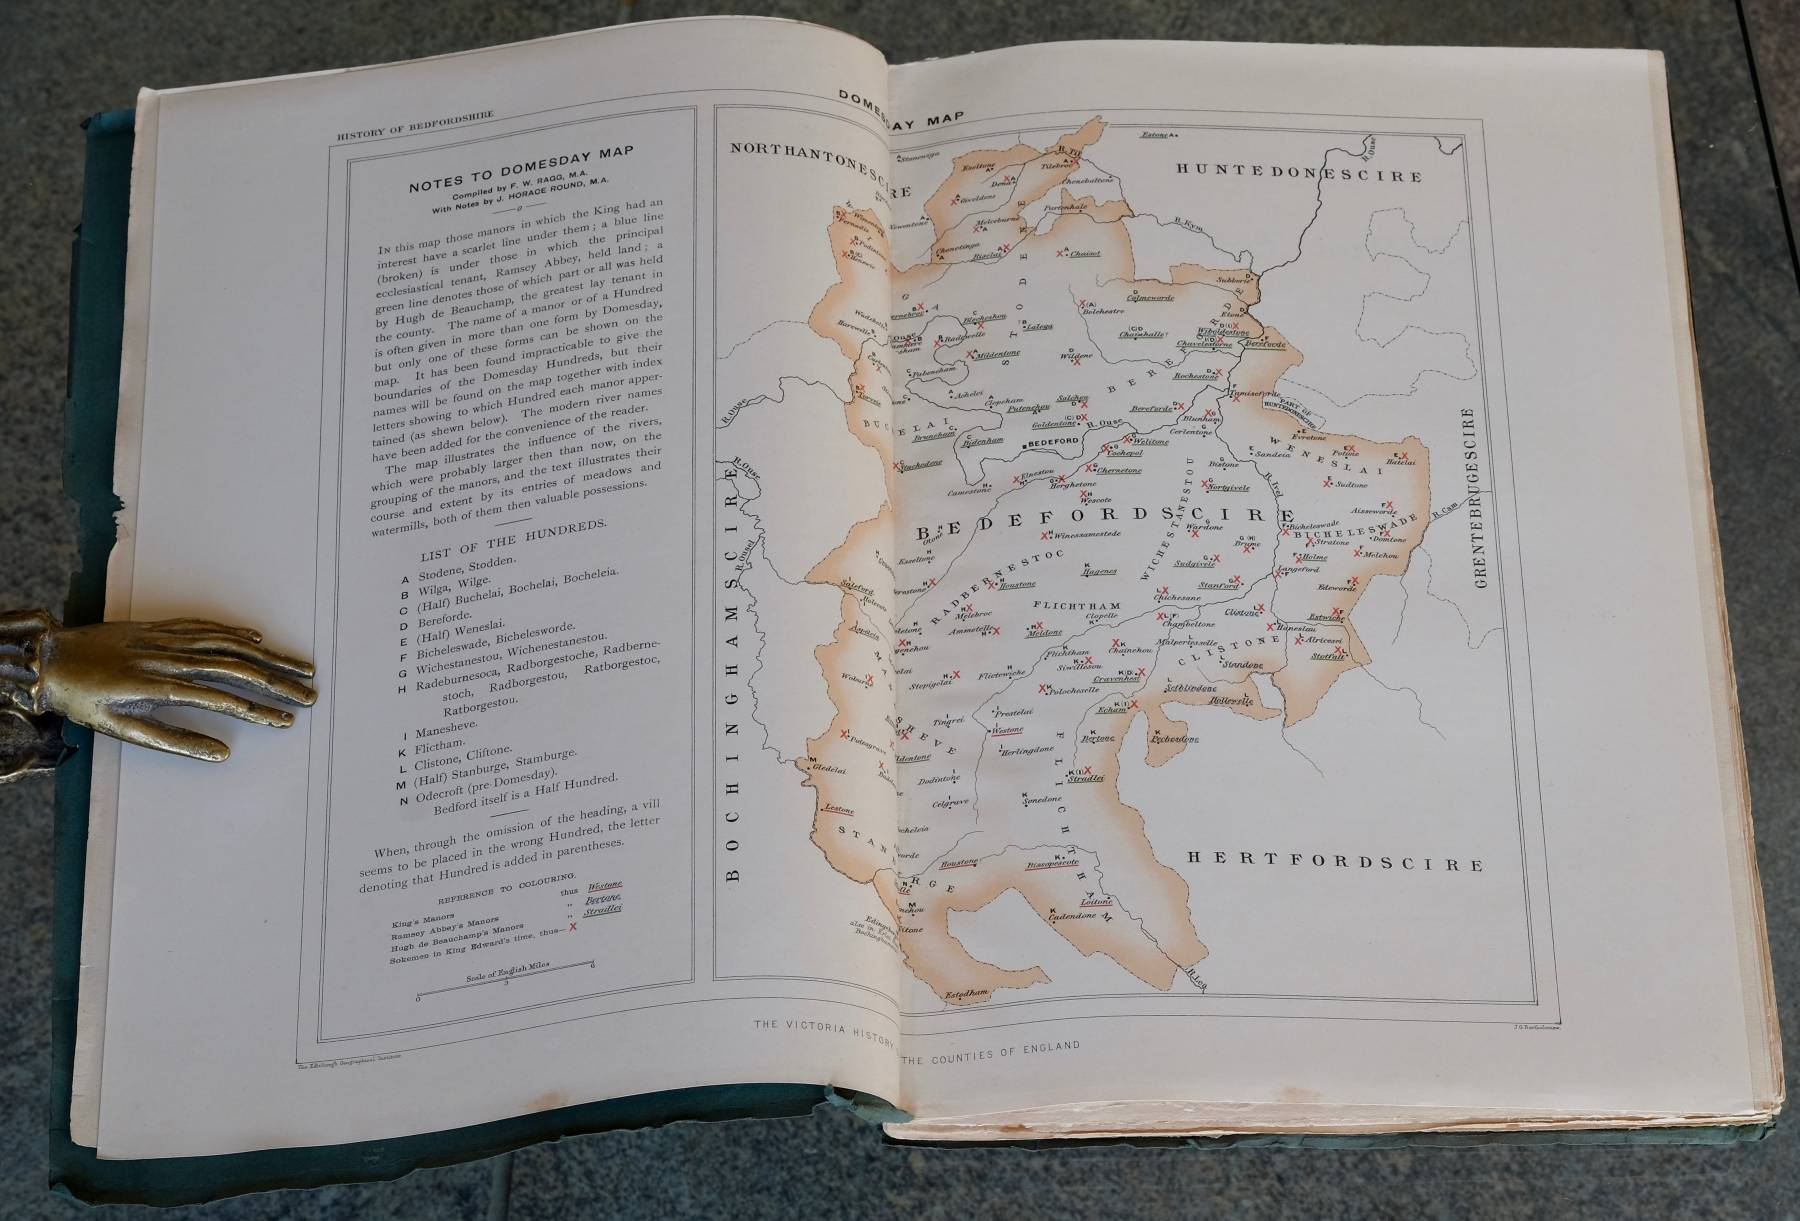 Bedfordshire Domesday Survey